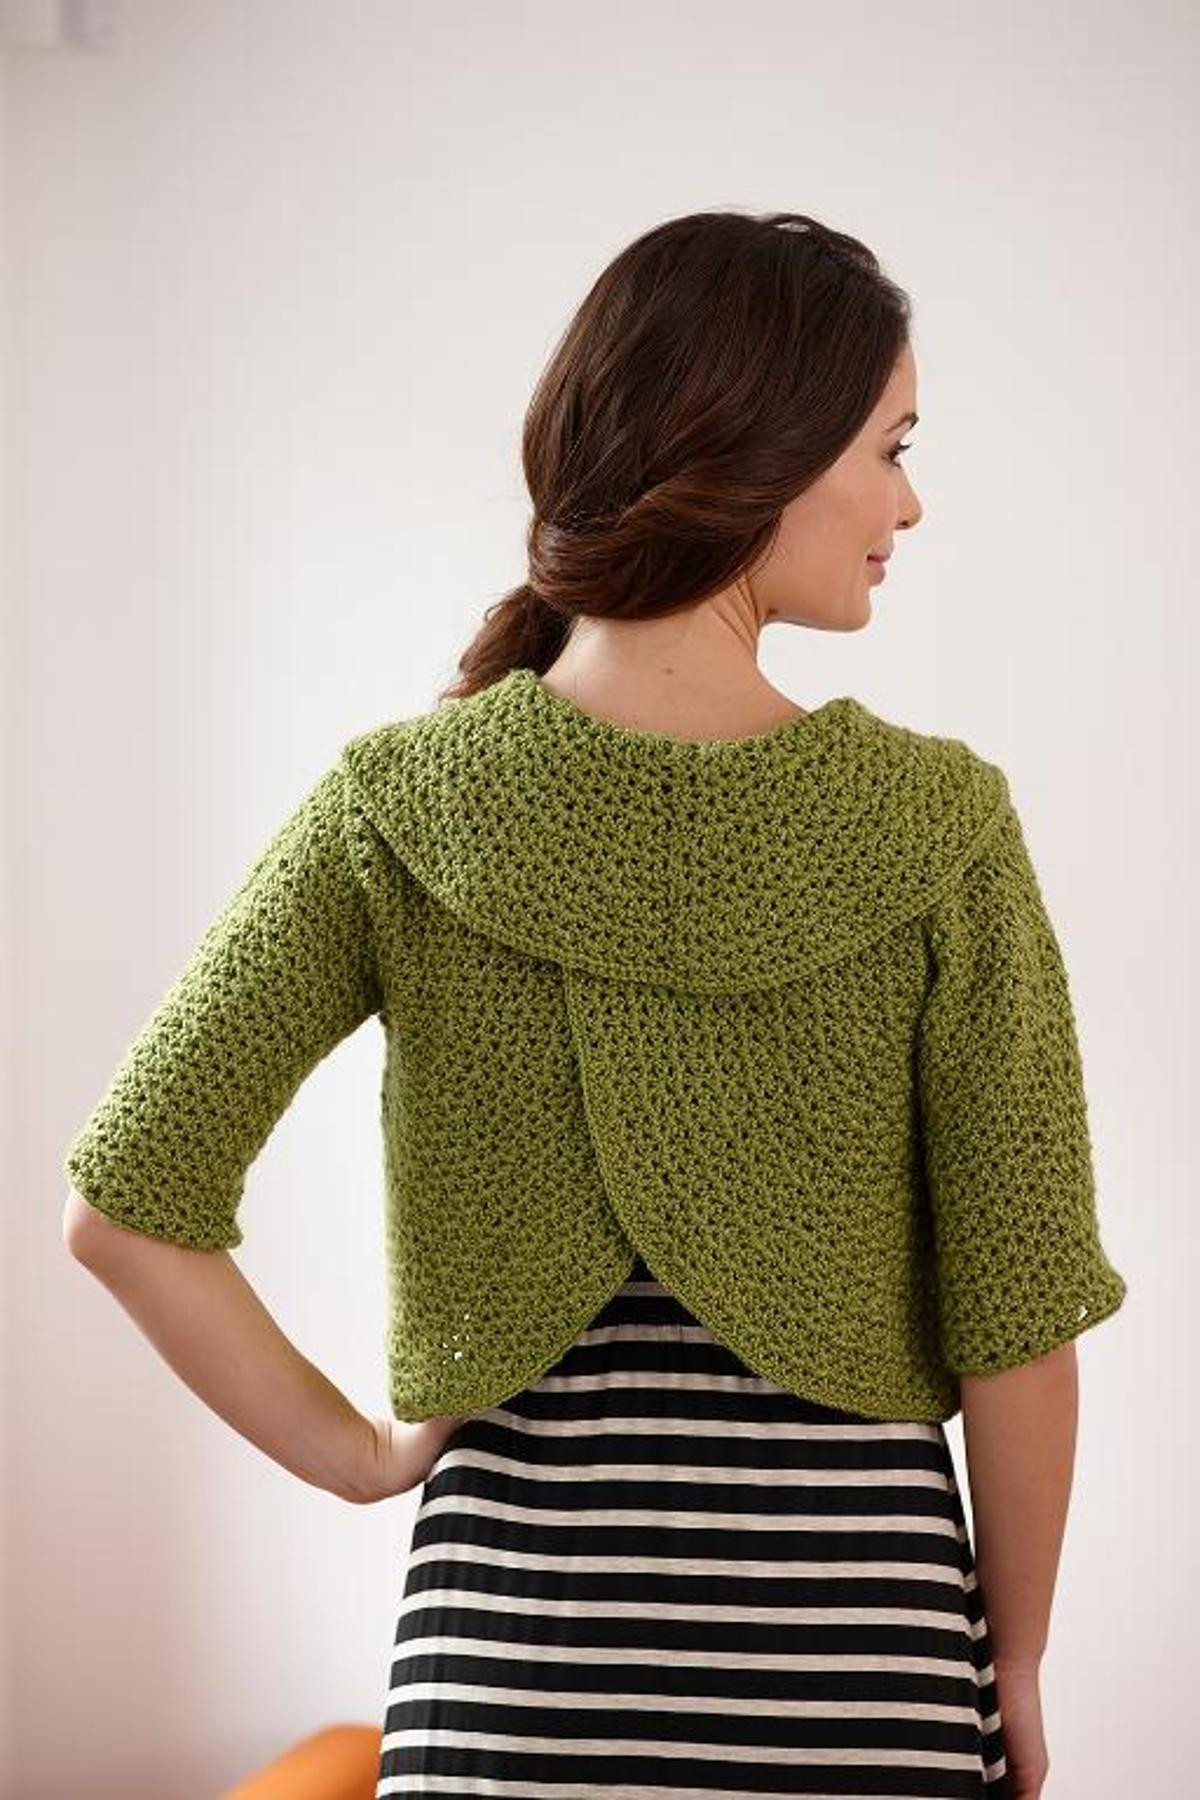 Awesome Round About Crochet Cardigan Kit Lion Brand Yarn Free Patterns Of Contemporary 45 Pics Lion Brand Yarn Free Patterns